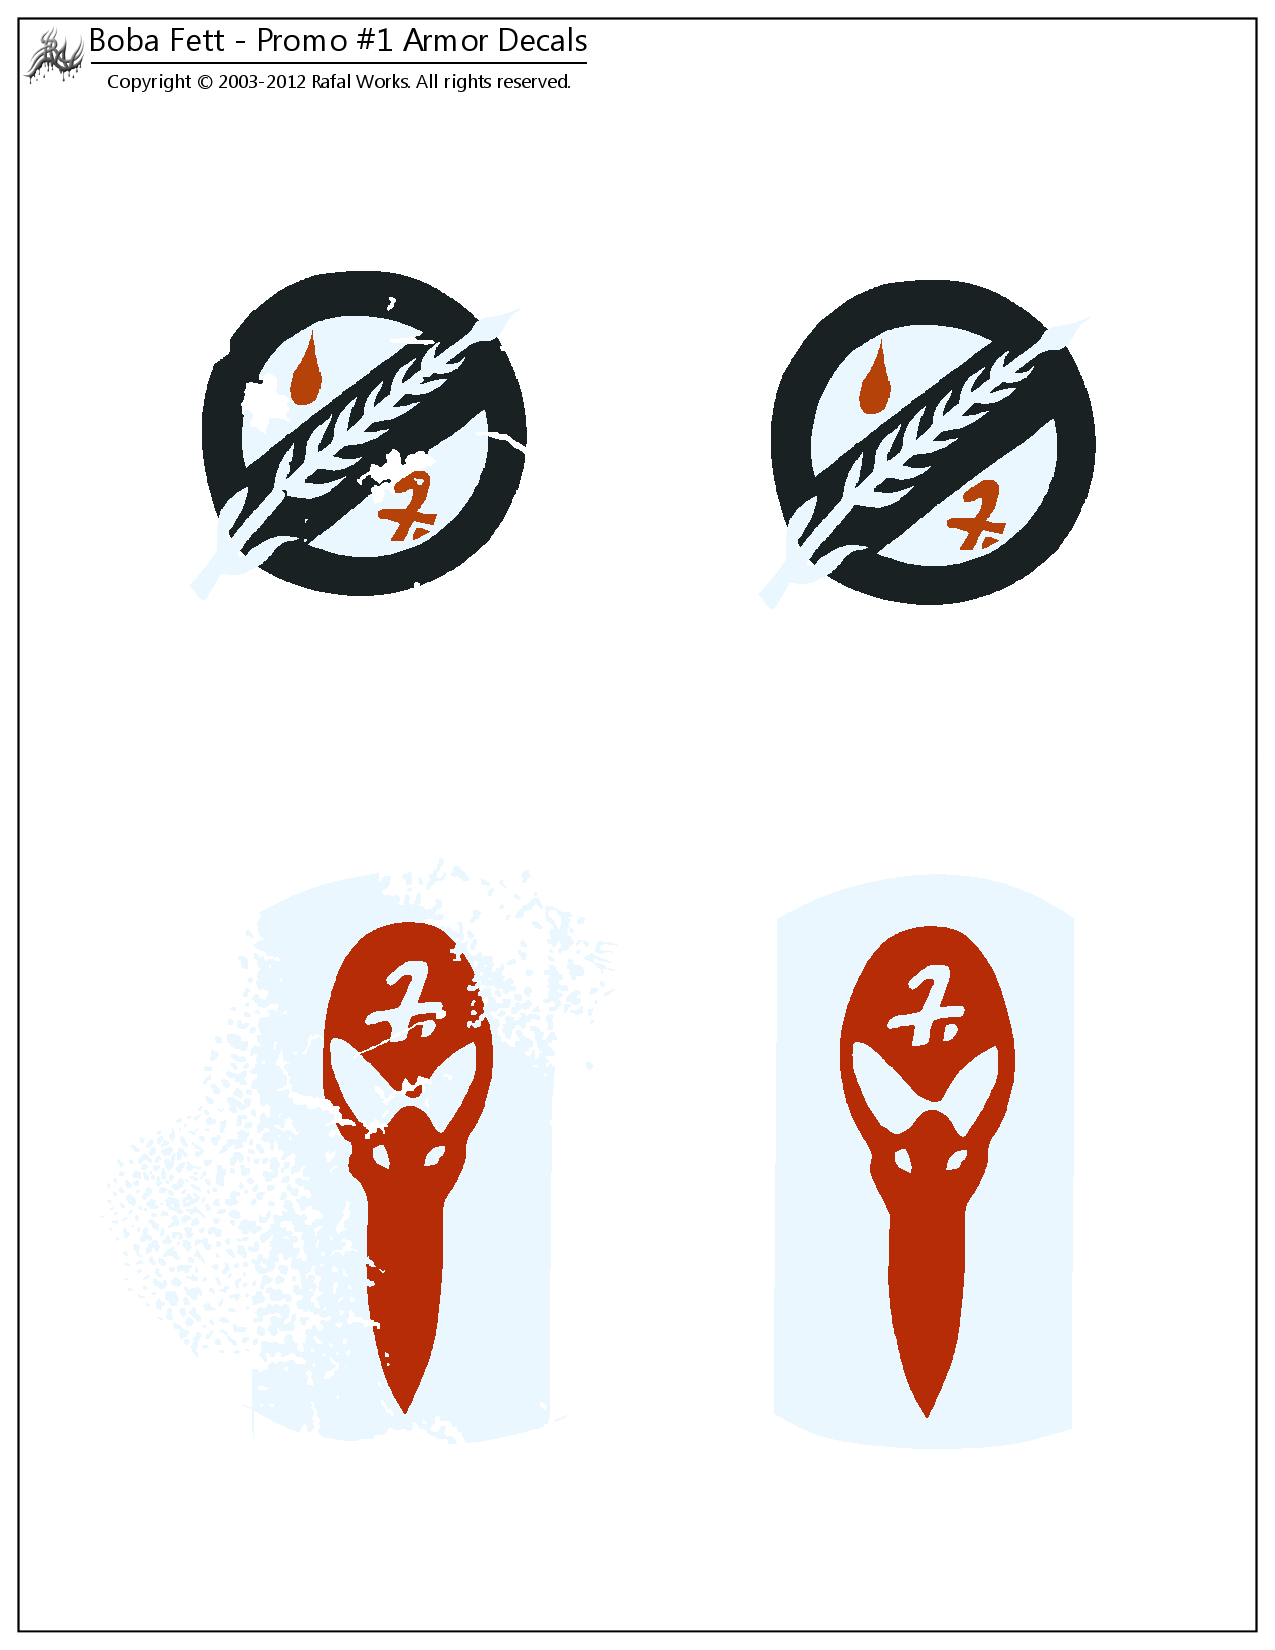 Promo1 Armor Decals LTR.png